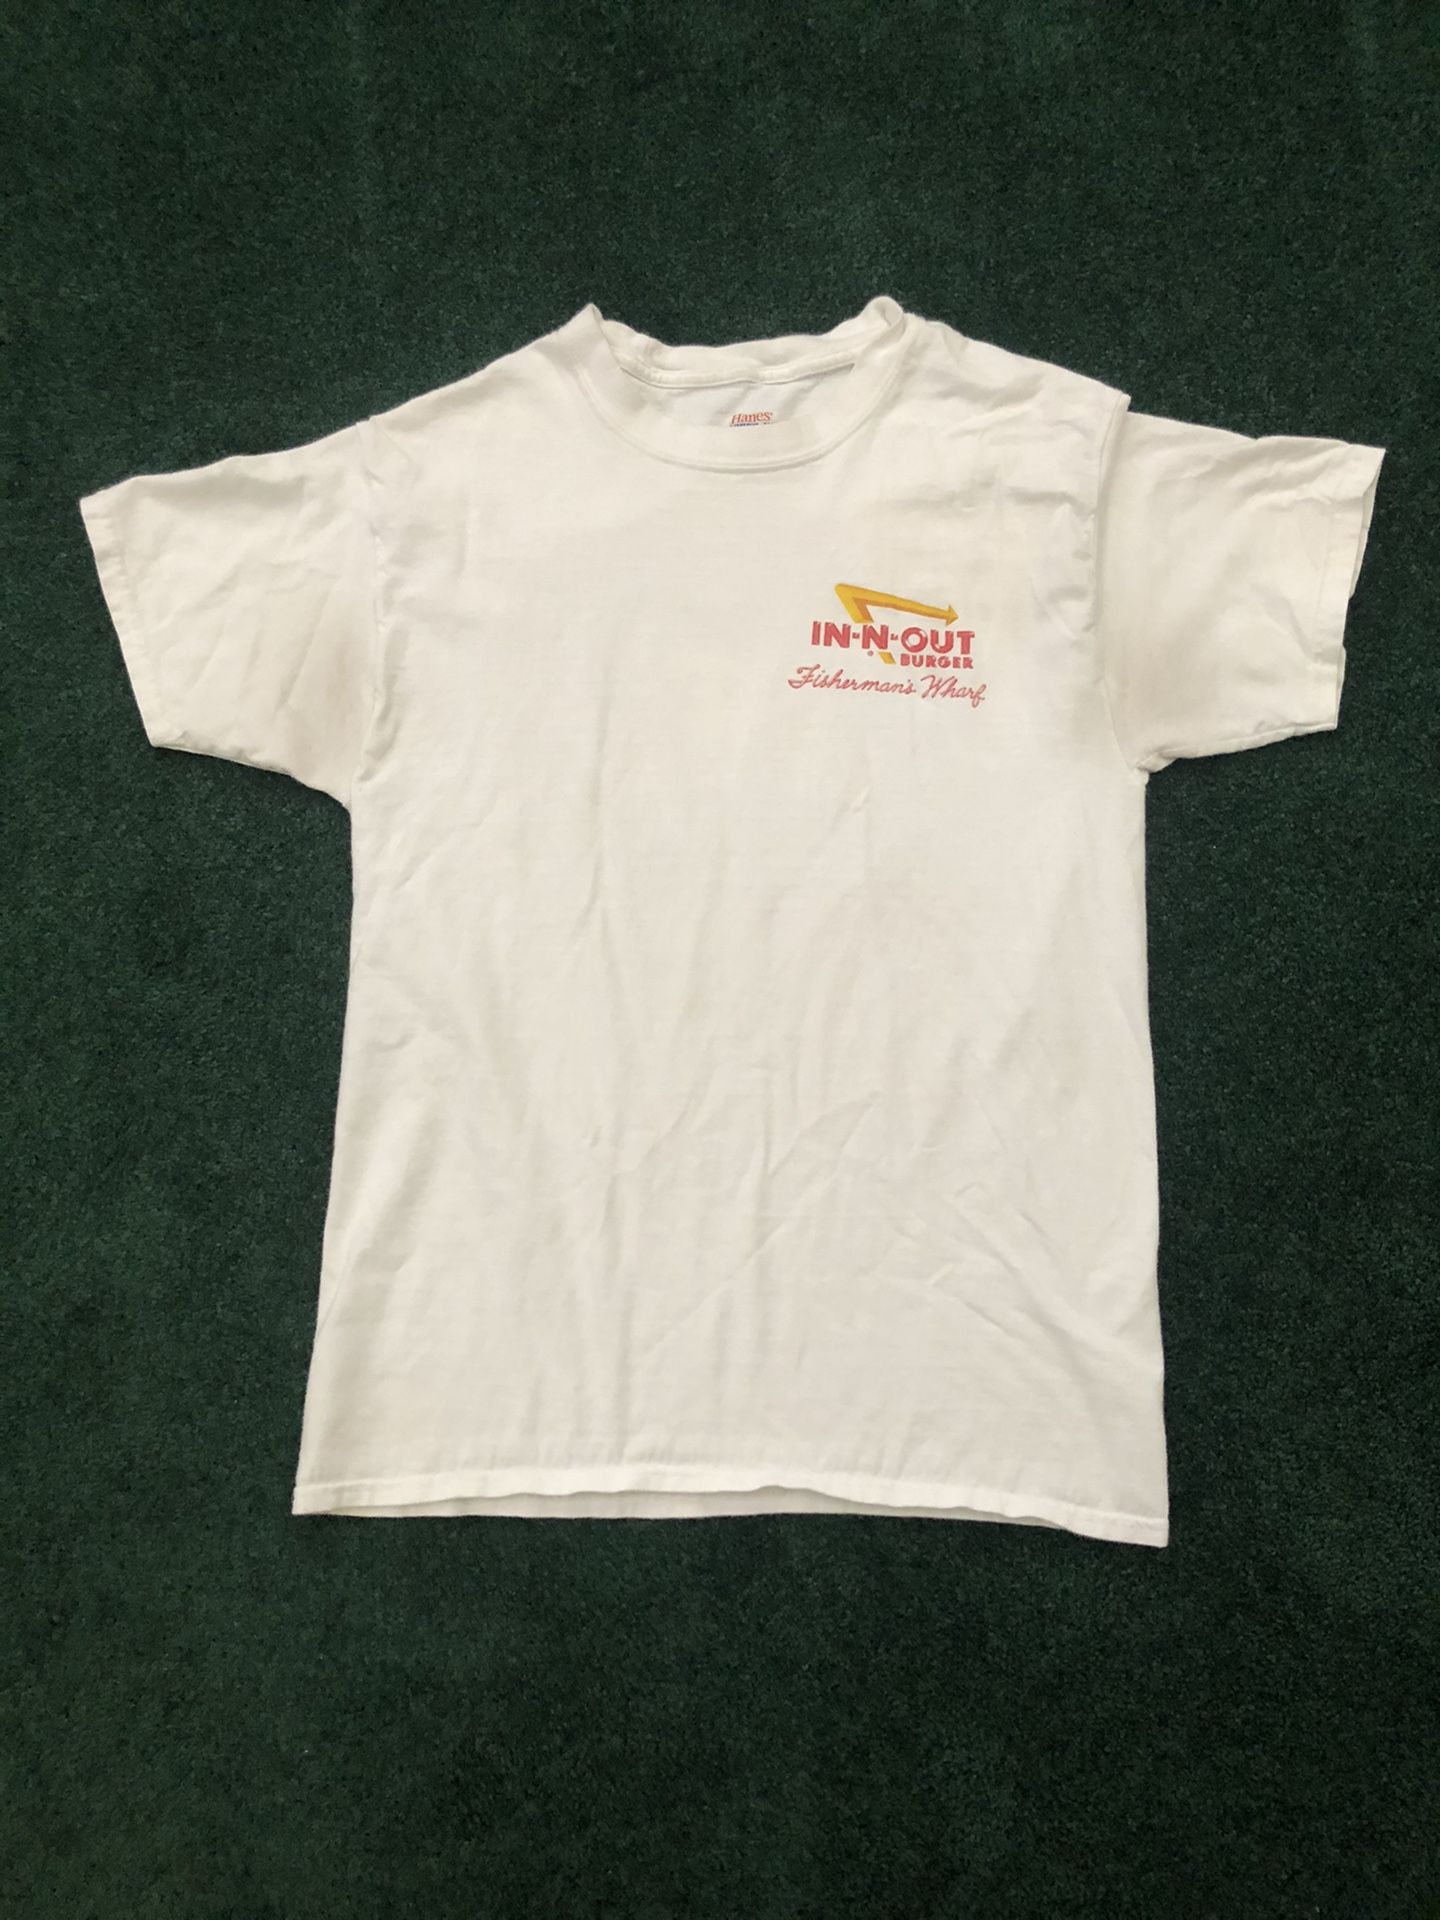 Vintage In N Out Shirt